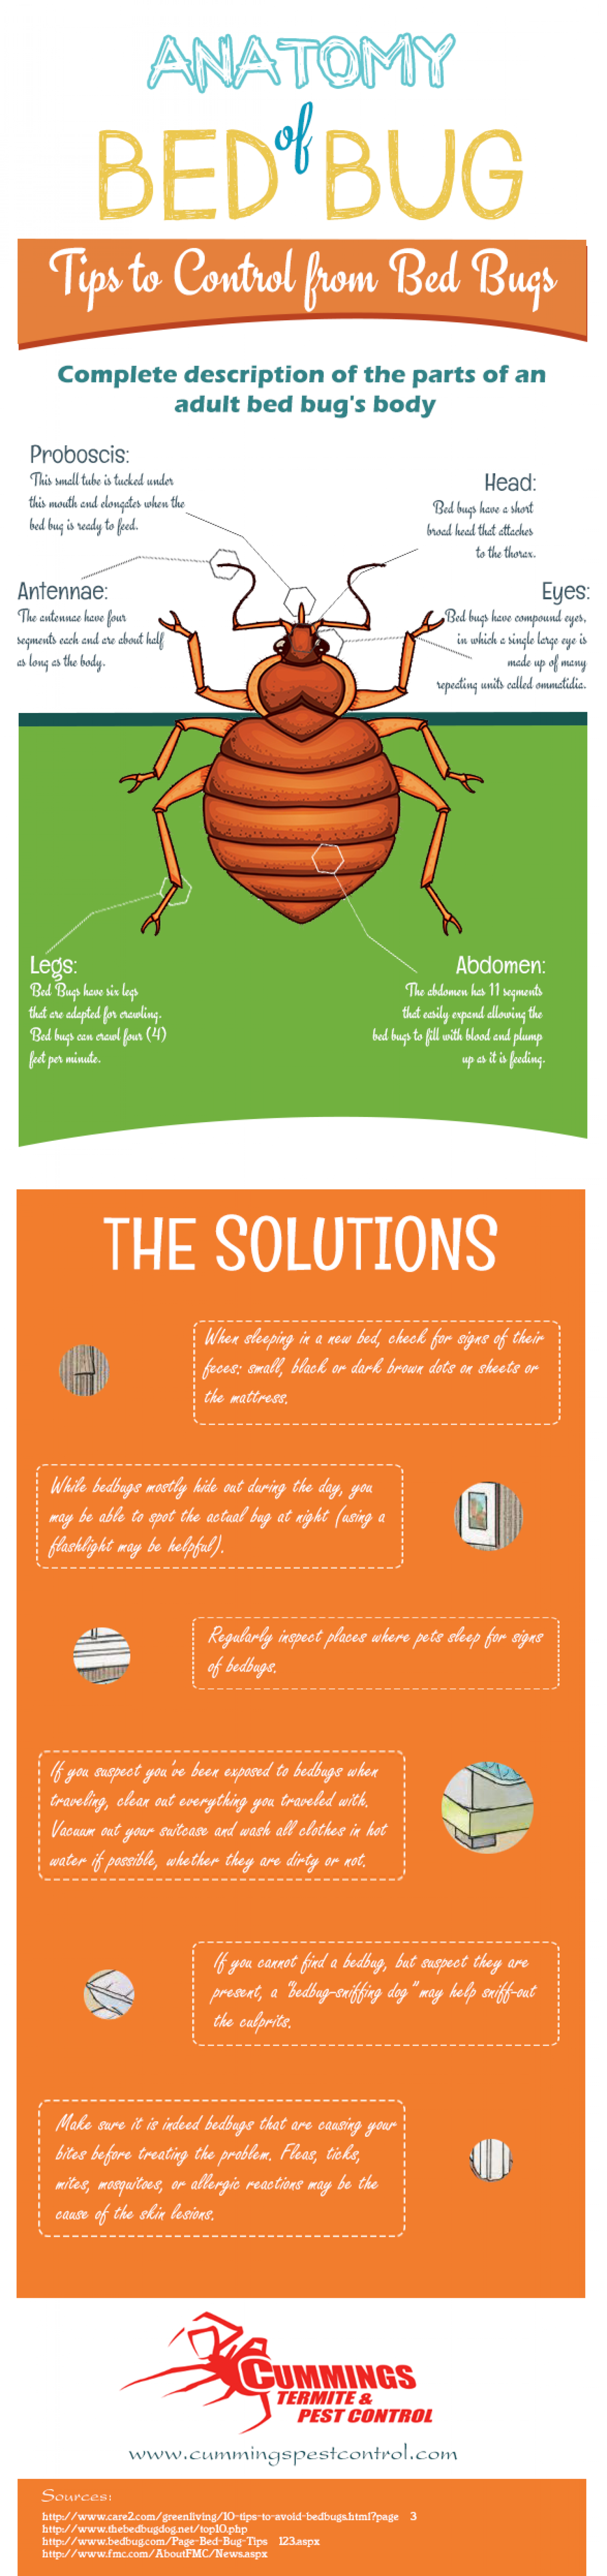 Anatomy of Bed Bug Tips to Control from Bed Bugs Infographic